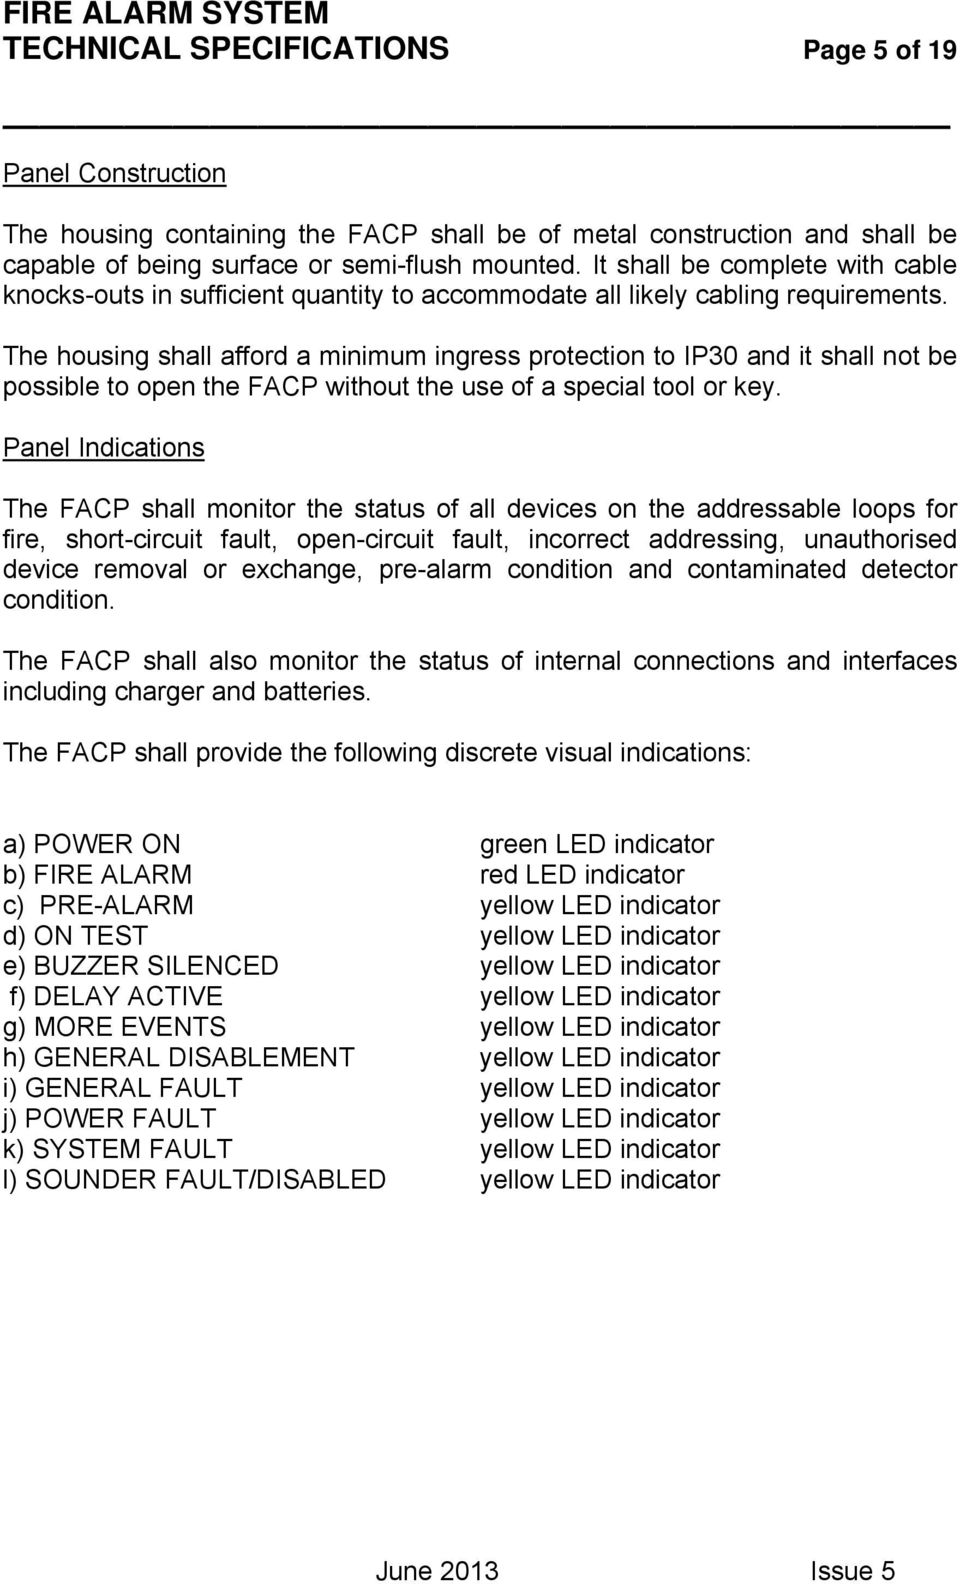 Fire Alarm System Technical Specifications Page 1 Of 19 Pdf Intelligent Schematic Diagram The Housing Shall Afford A Minimum Ingress Protection To Ip30 And It Not Be Possible